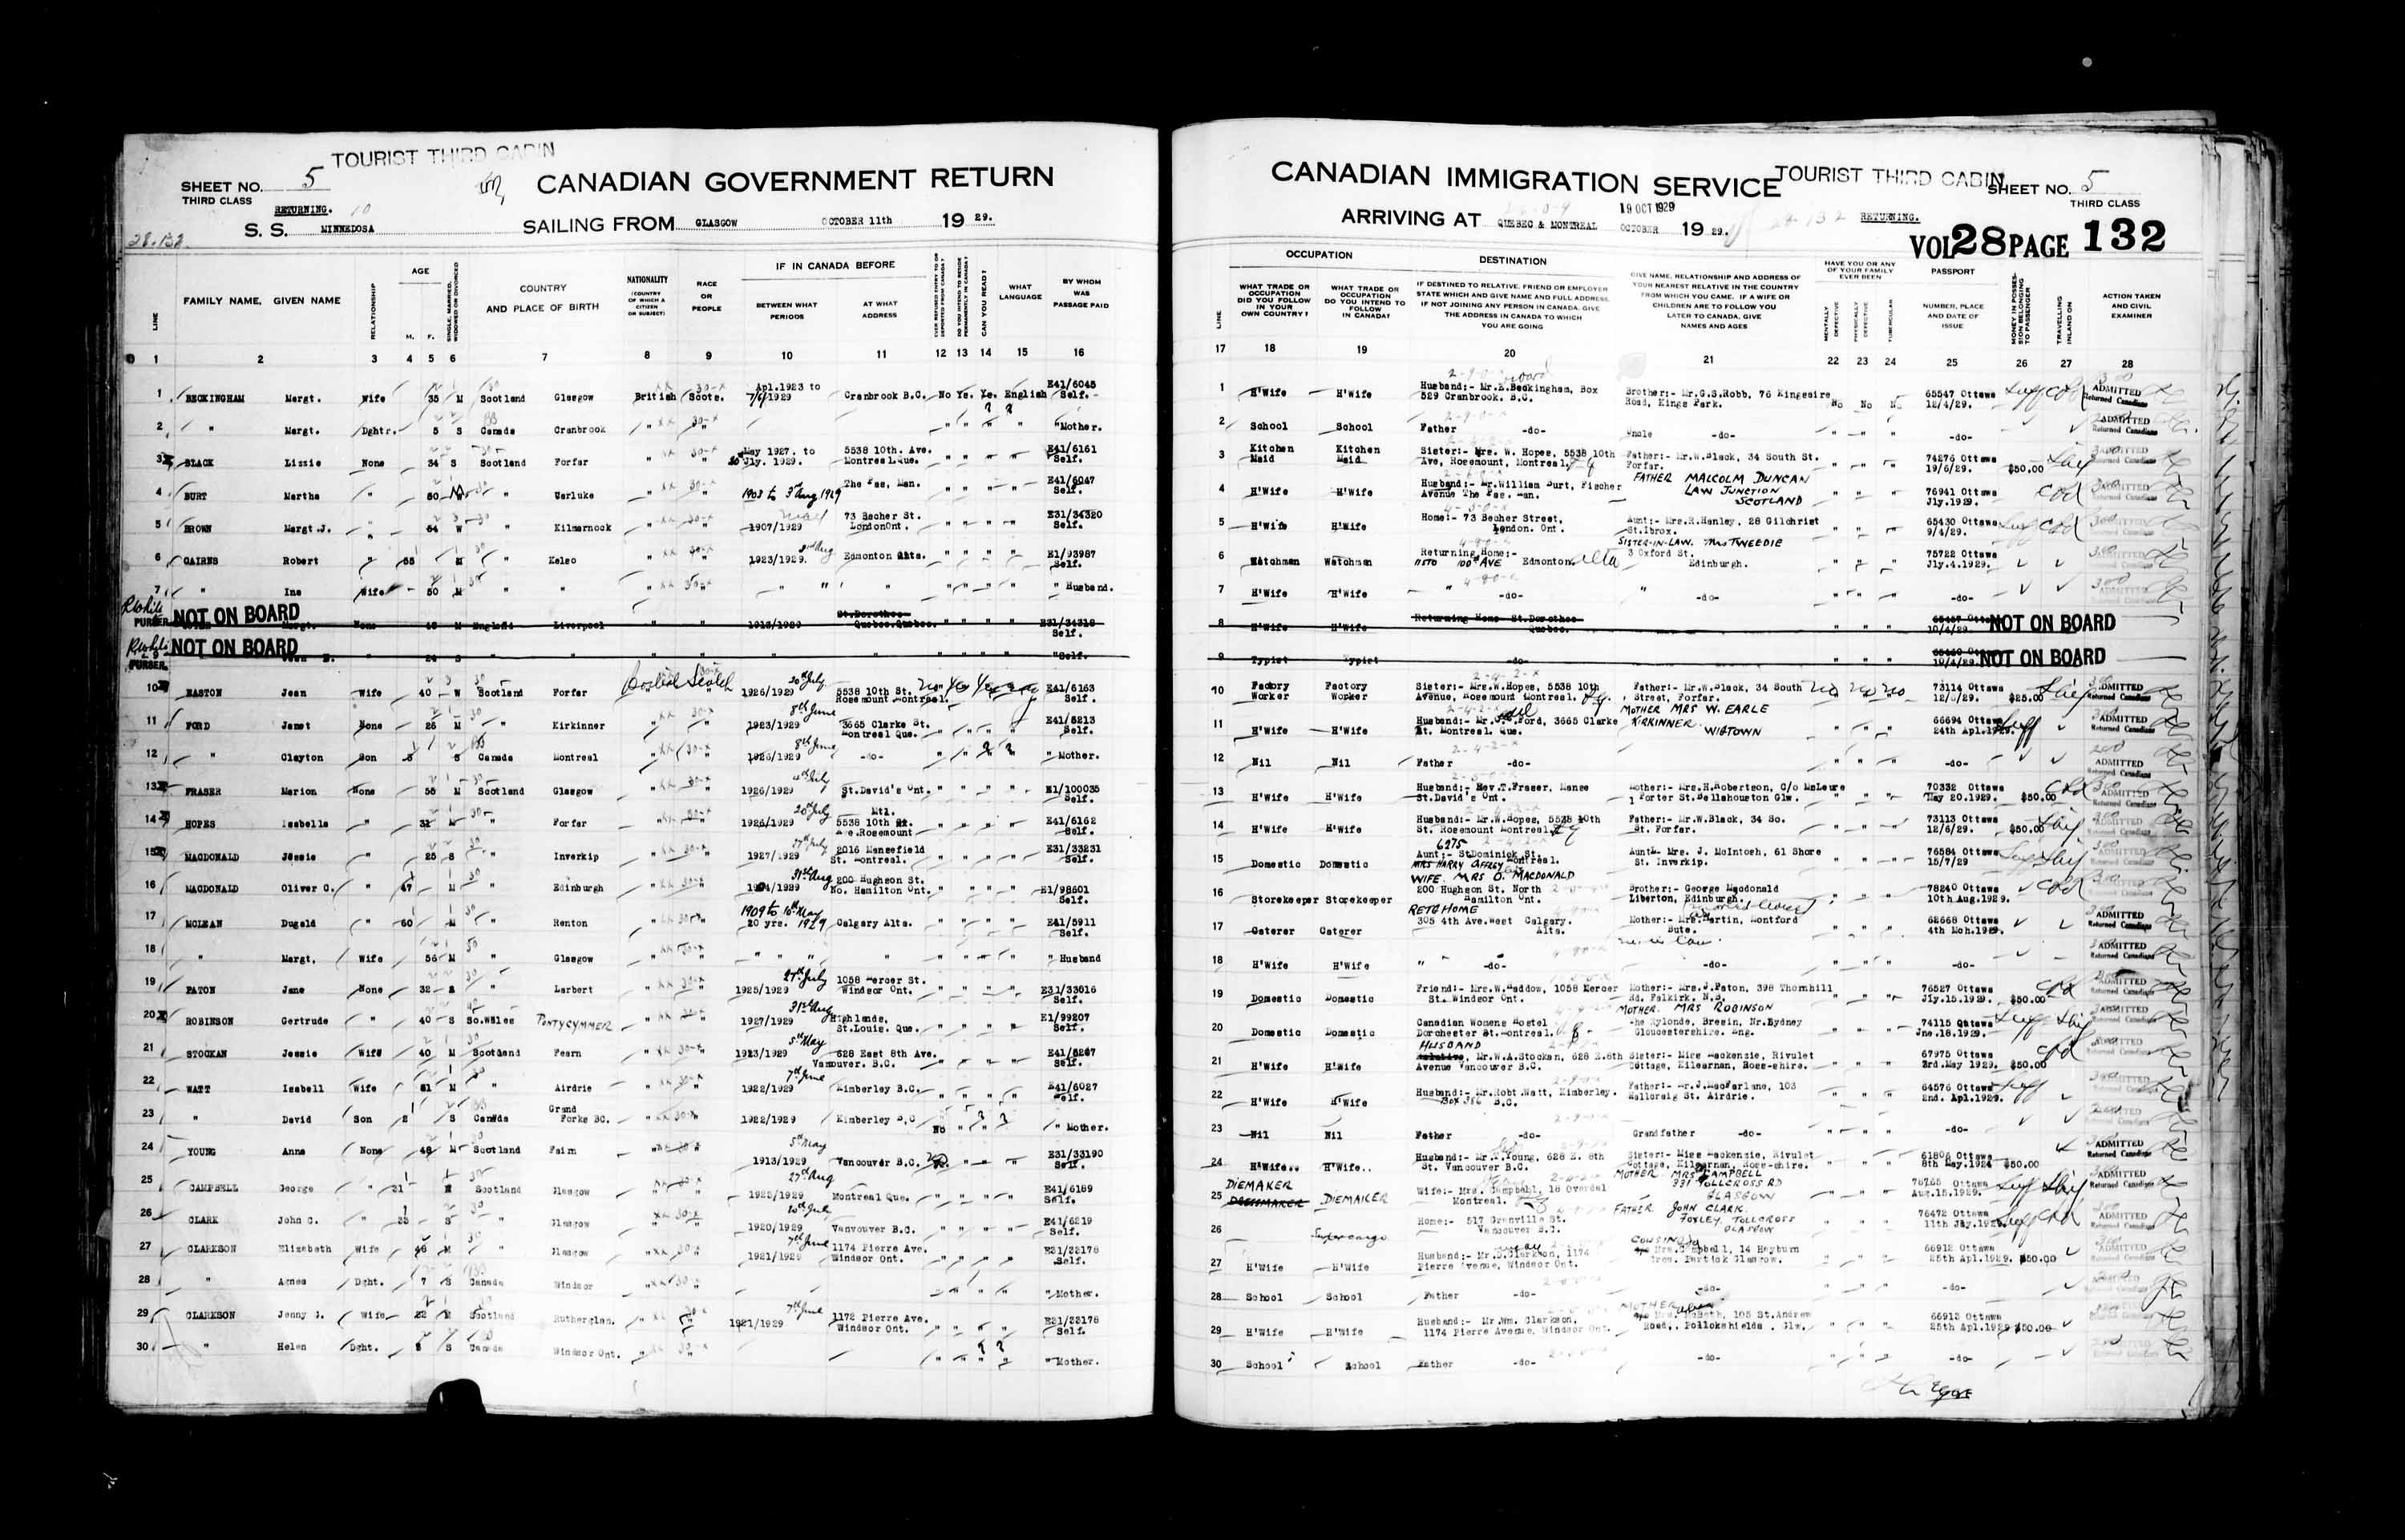 Title: Passenger Lists: Quebec City (1925-1935) - Mikan Number: 134839 - Microform: t-14761